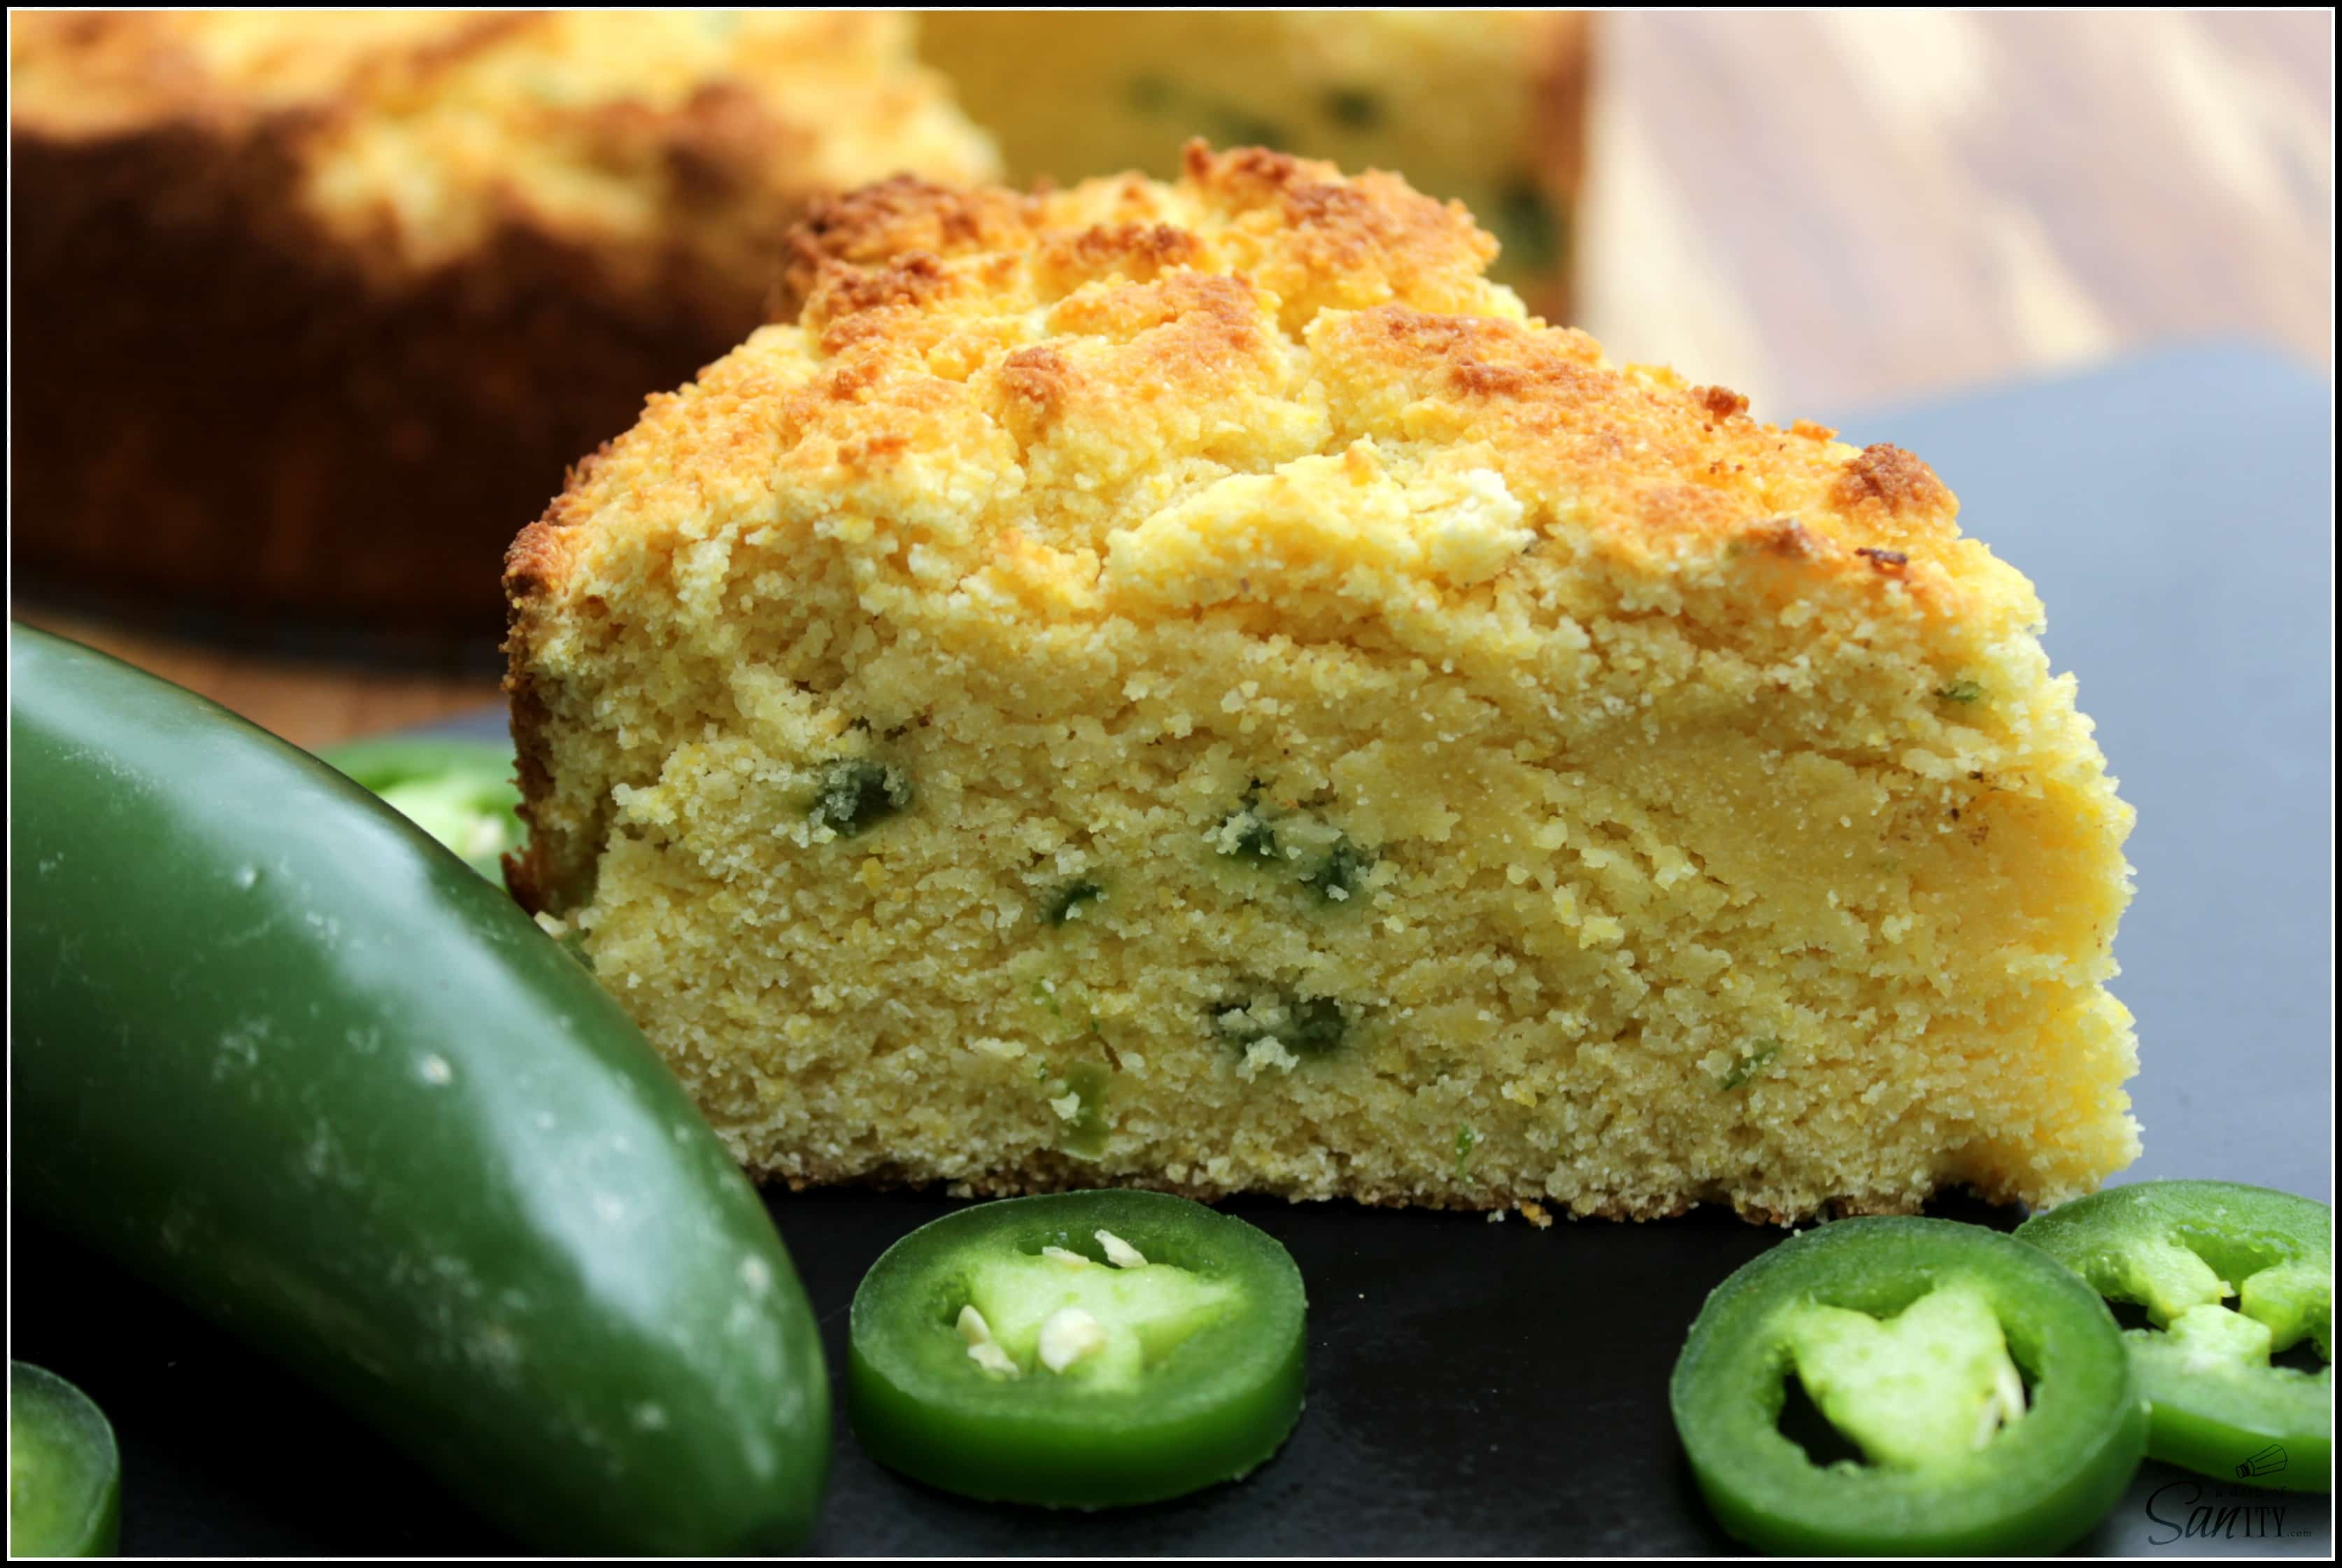 Gluten-Free Sweet Jalapeño Cornbread made with coconut flour and fresh jalapeno is a sweet bread with a hint of spice that everyone will enjoy.